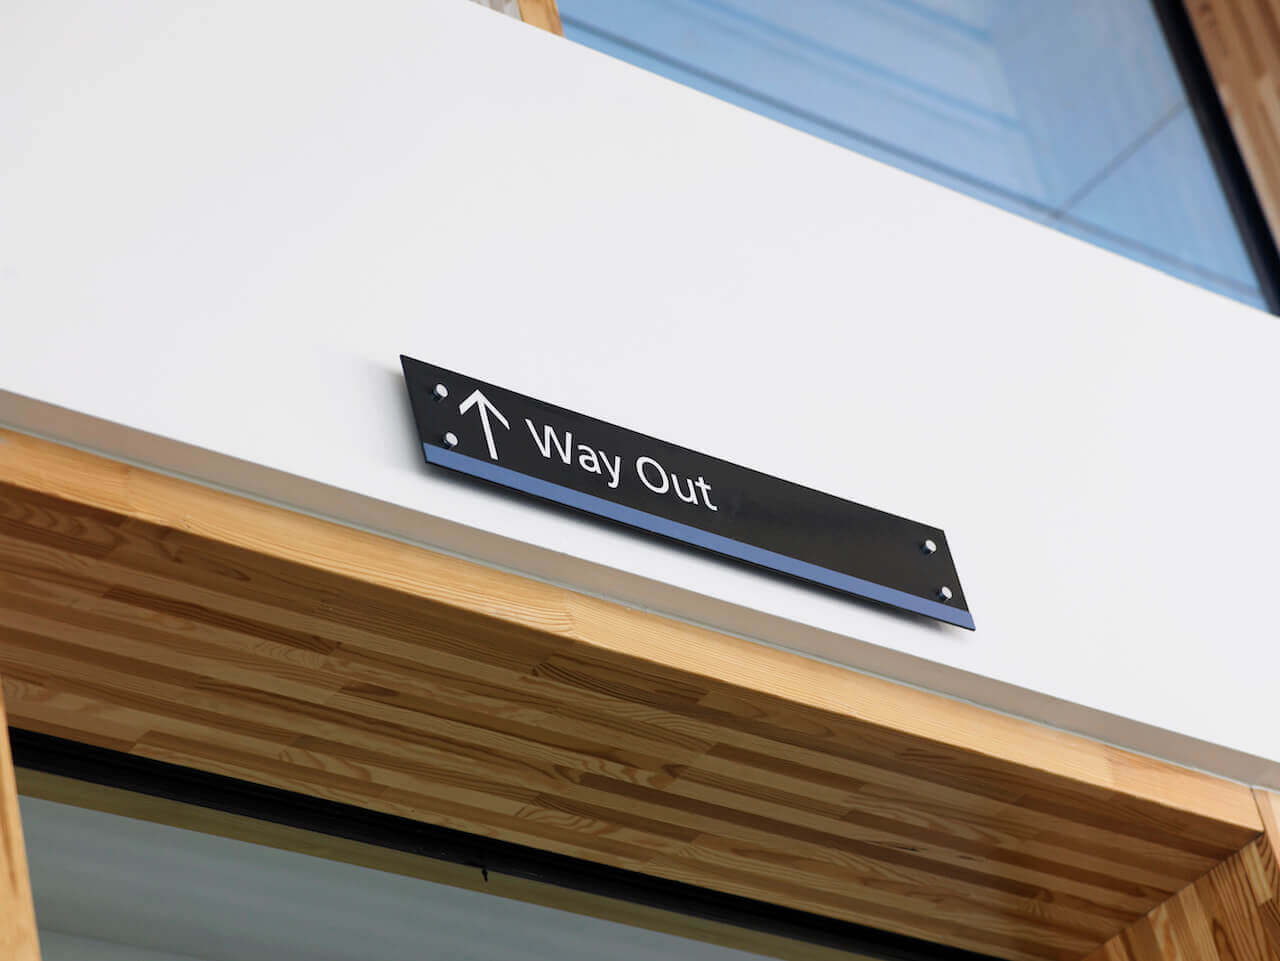 A way out sign above a doorway showing the way